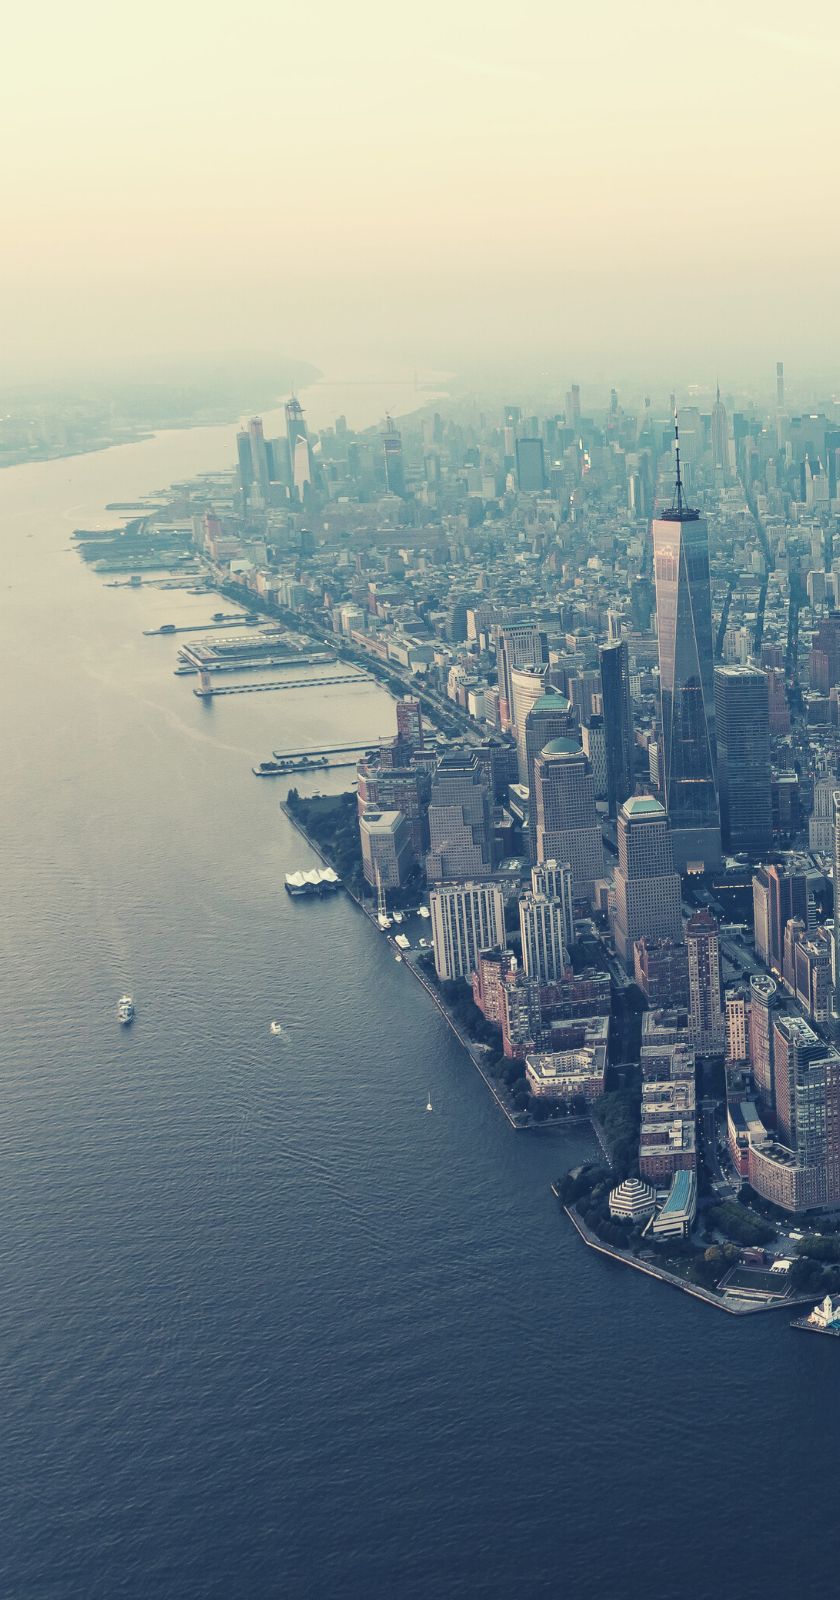 The Best 25 New York City Wallpapers To Download Free For Iphone City Wallpaper City Tumblr Central Park View